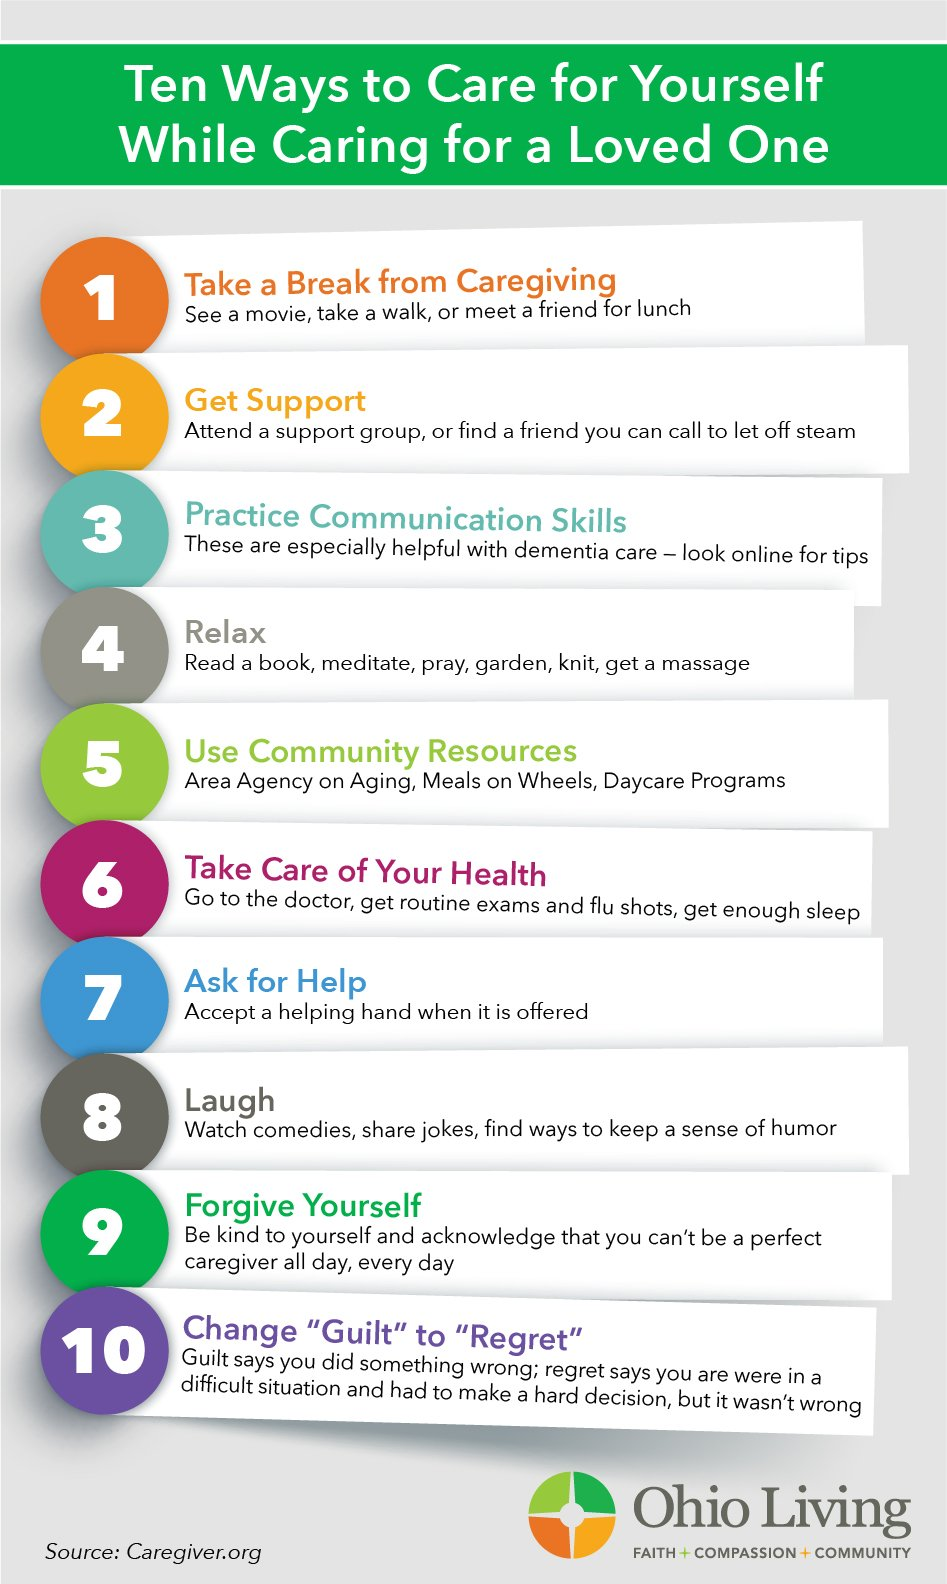 10 Ways to Care for Yourself